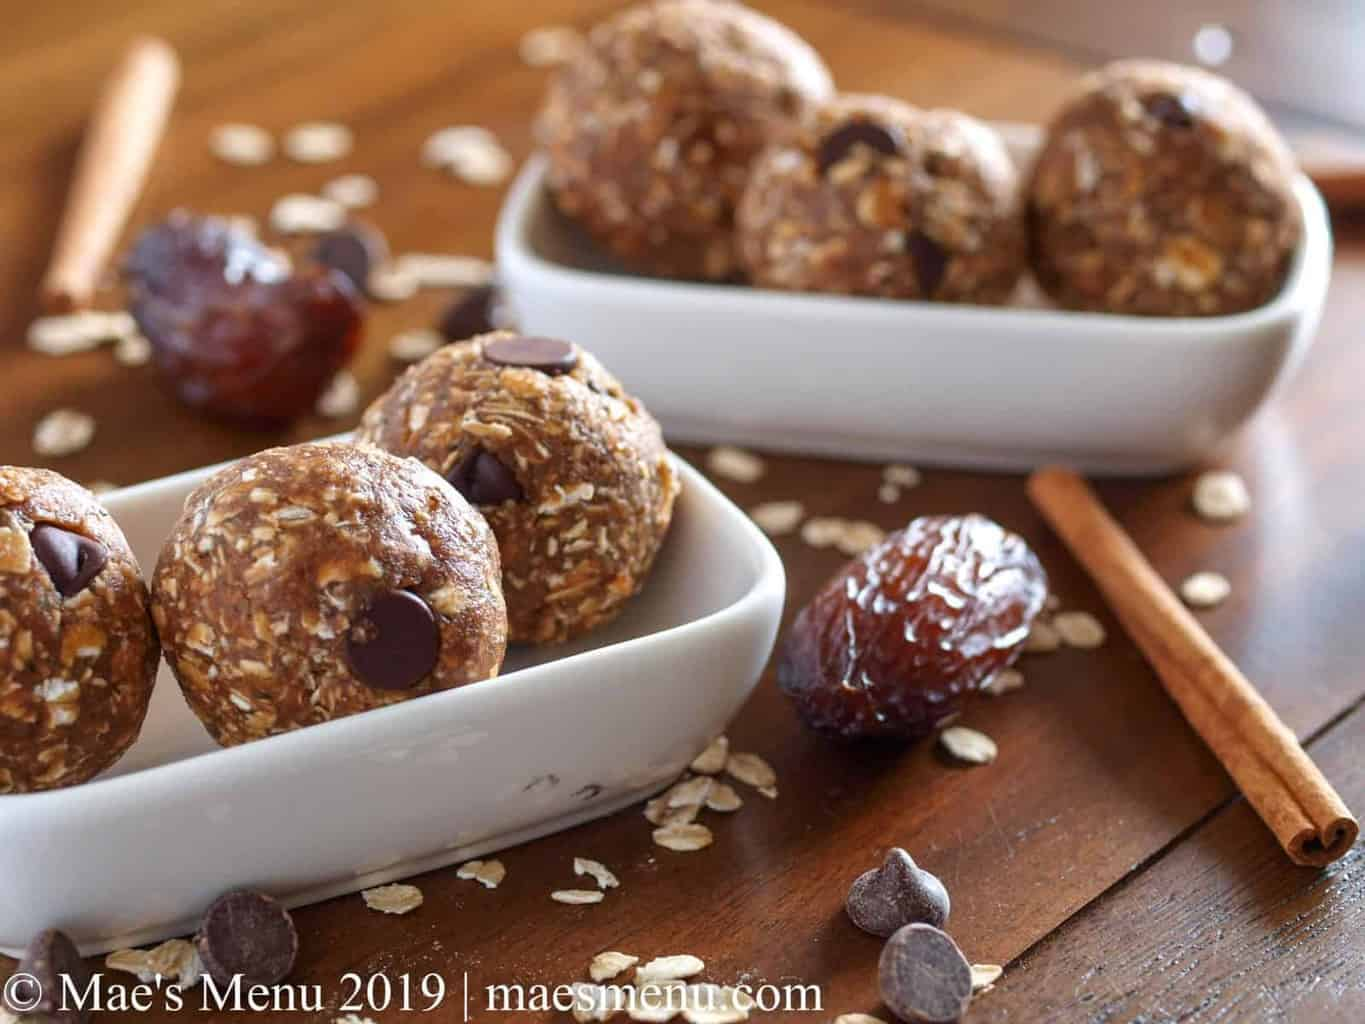 Two small dishes of date energy balls next to dates, oats, cinnamon sticks, and chococlate chips.